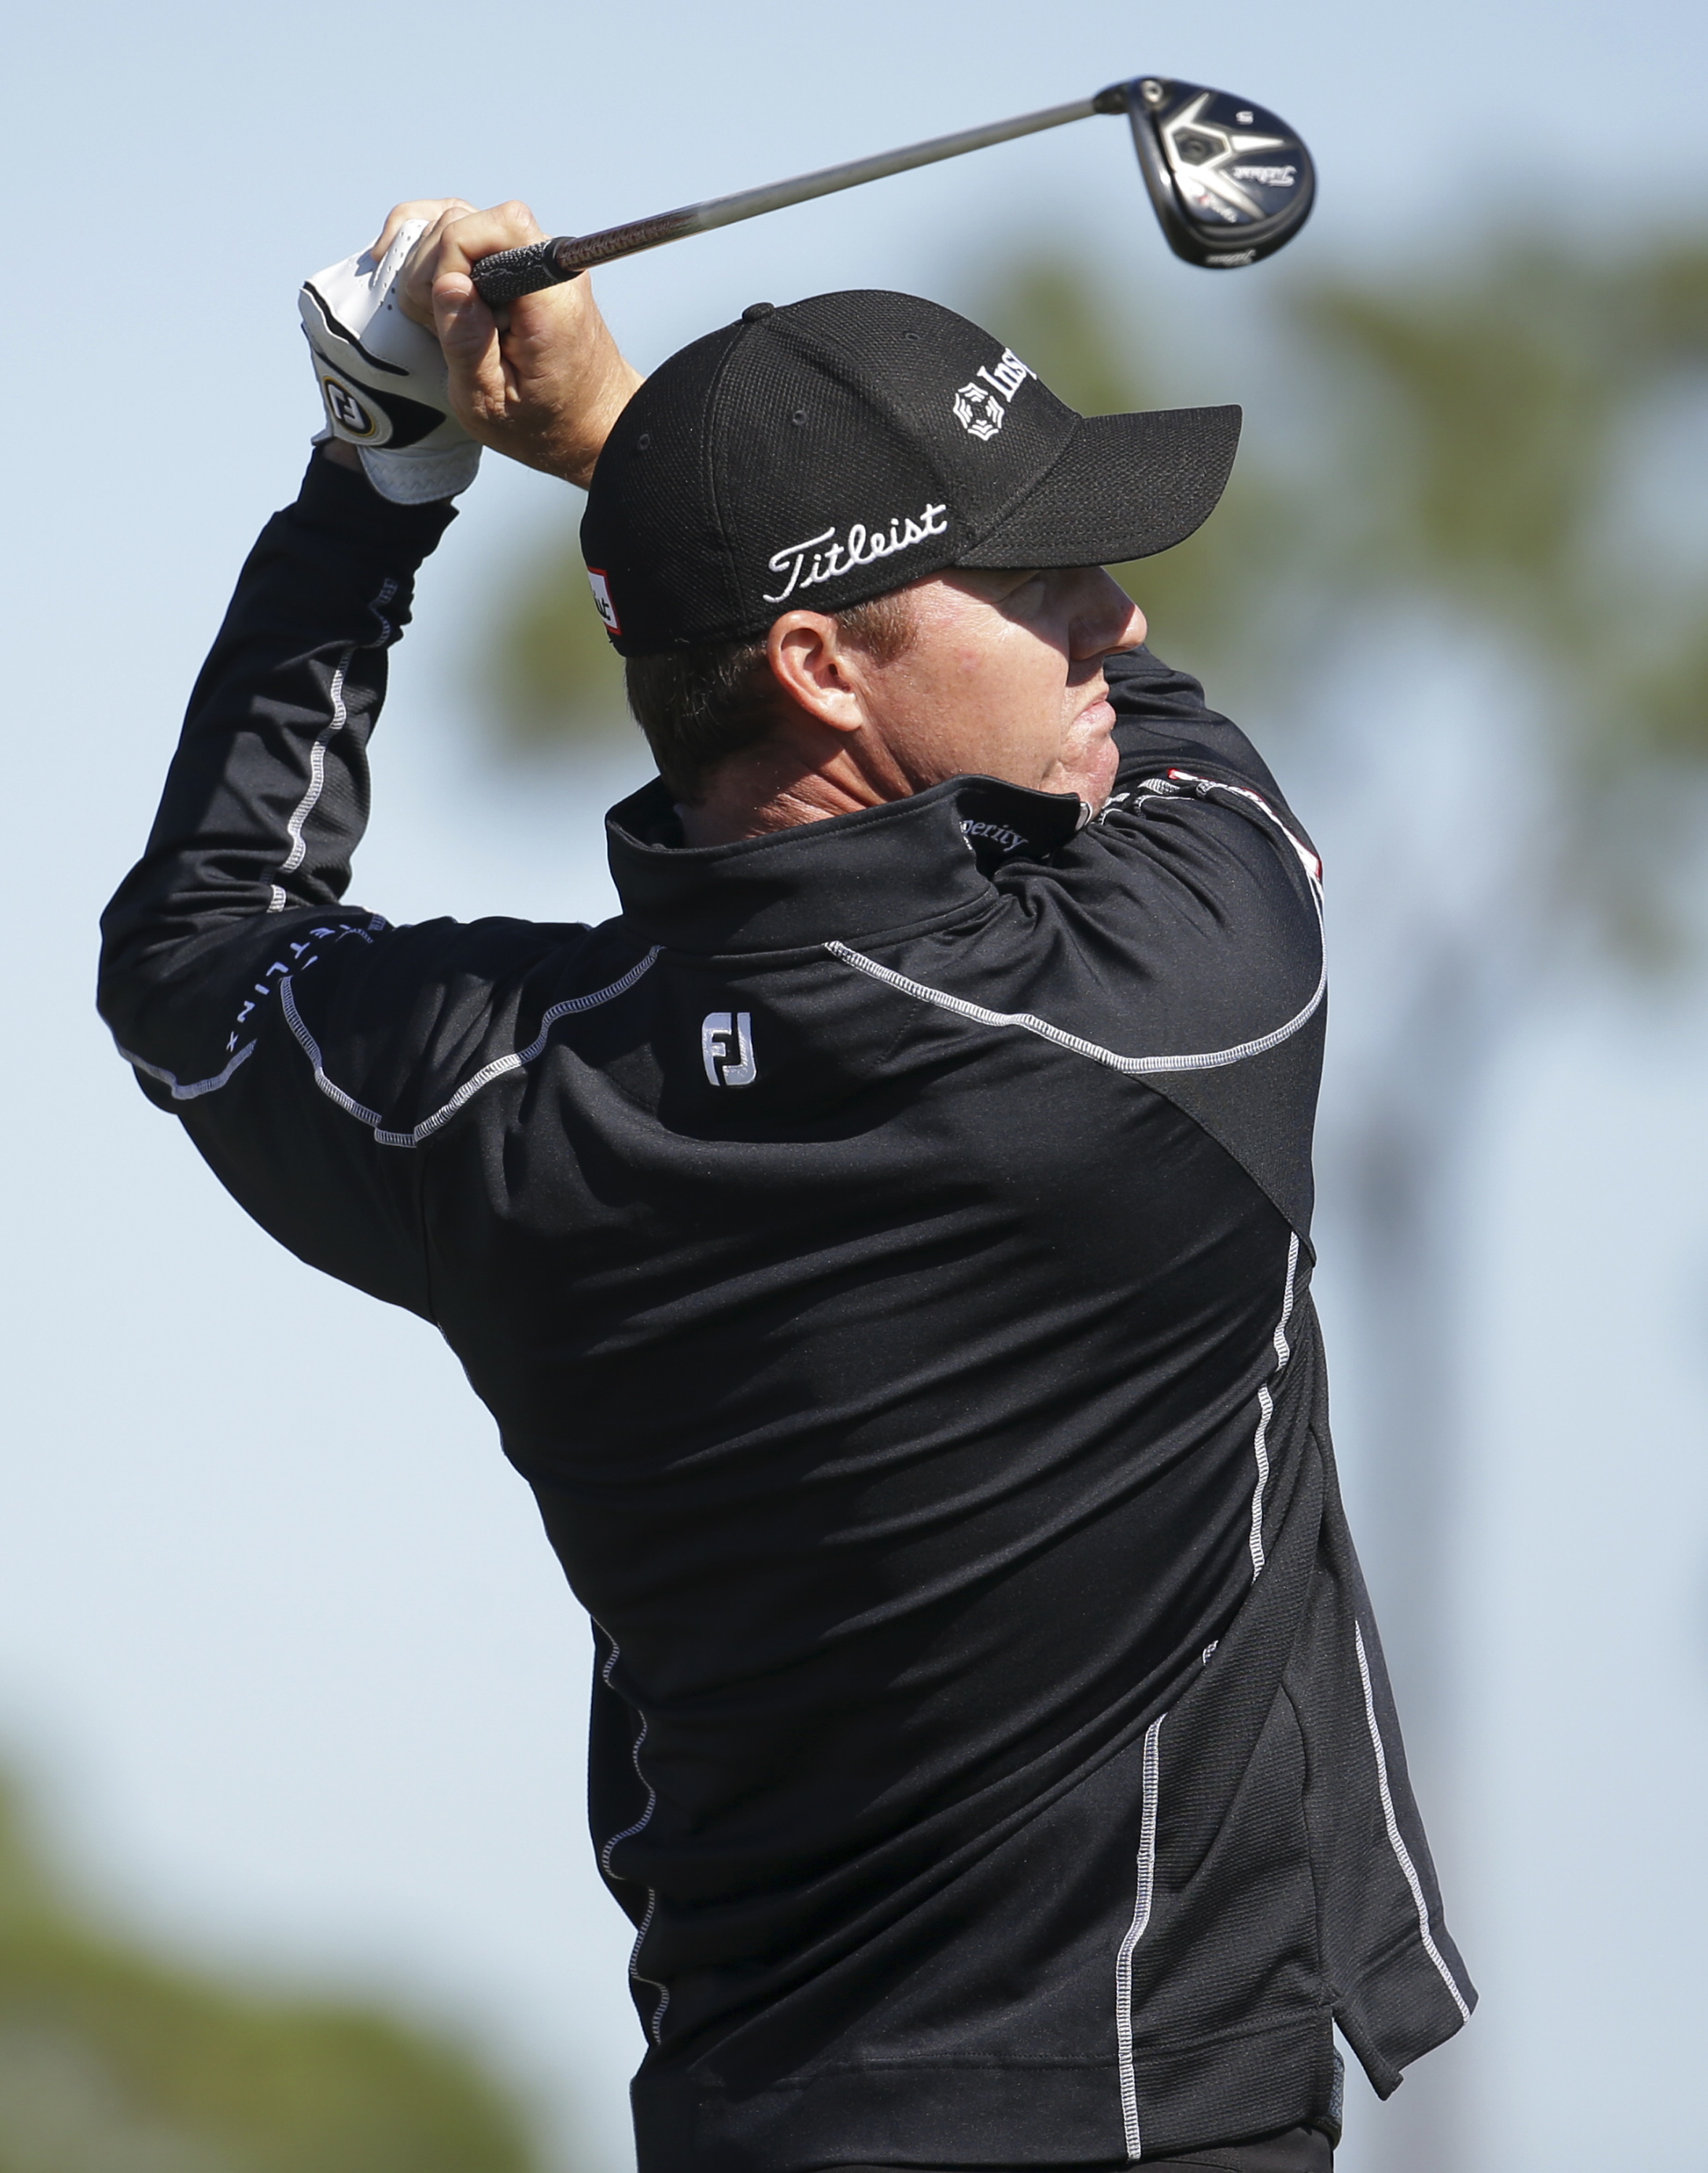 Jimmy Walker tees off on the ninth hole during the second round of the Honda Classic golf tournament, Friday, Feb. 26, 2016, in Palm Beach Gardens, Fla. (AP Photo/Lynne Sladky)